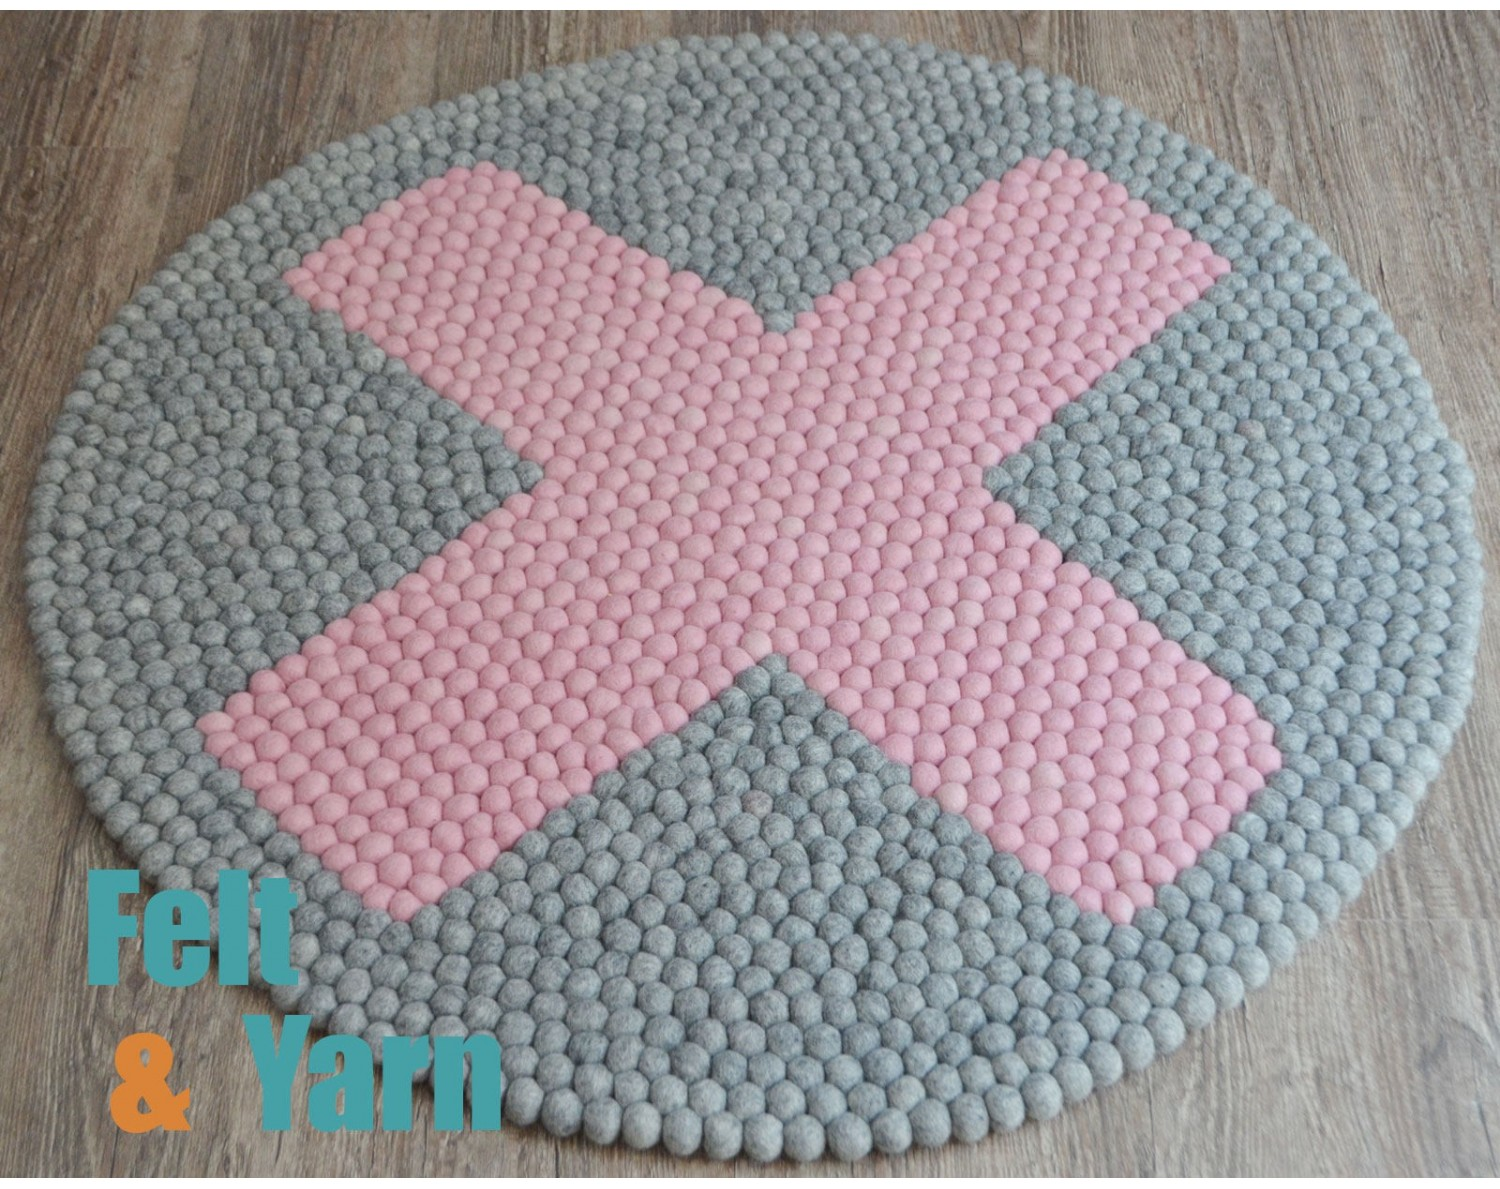 X Design Grey Felt Ball Rug for Home Décor - Felt & Rug